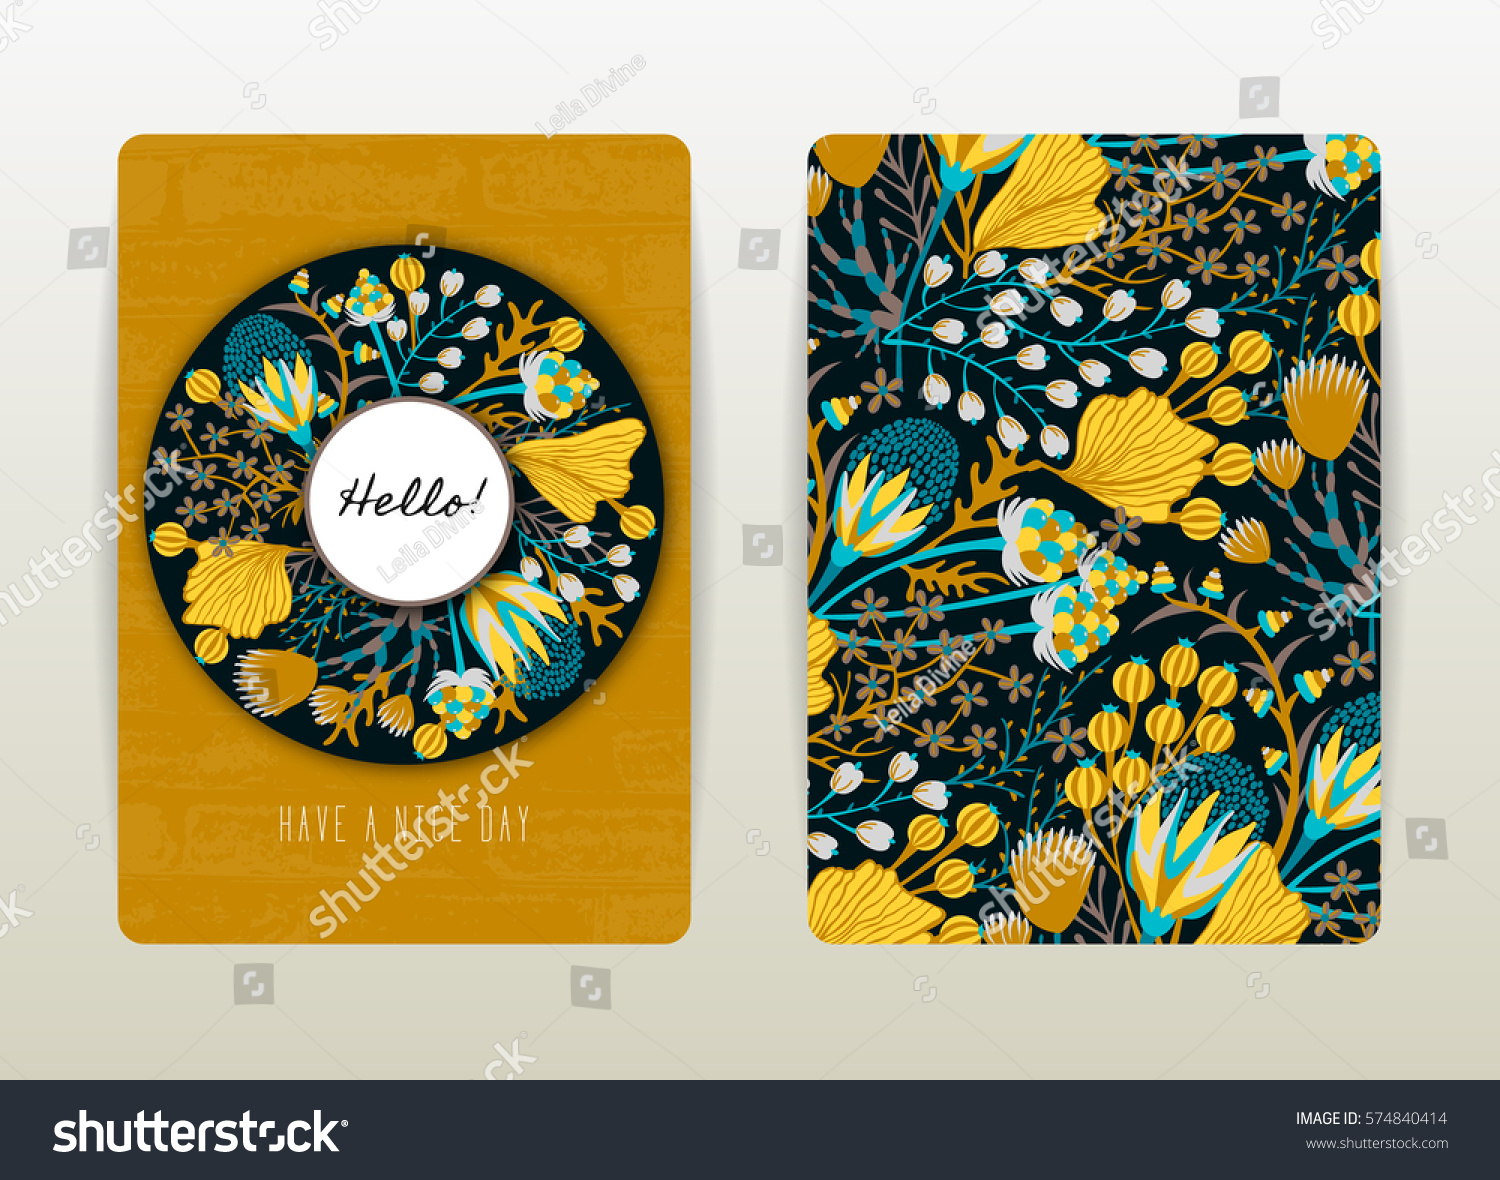 Book Cover Design With Flowers ~ Cover design floral pattern hand drawn stock vektorgrafik